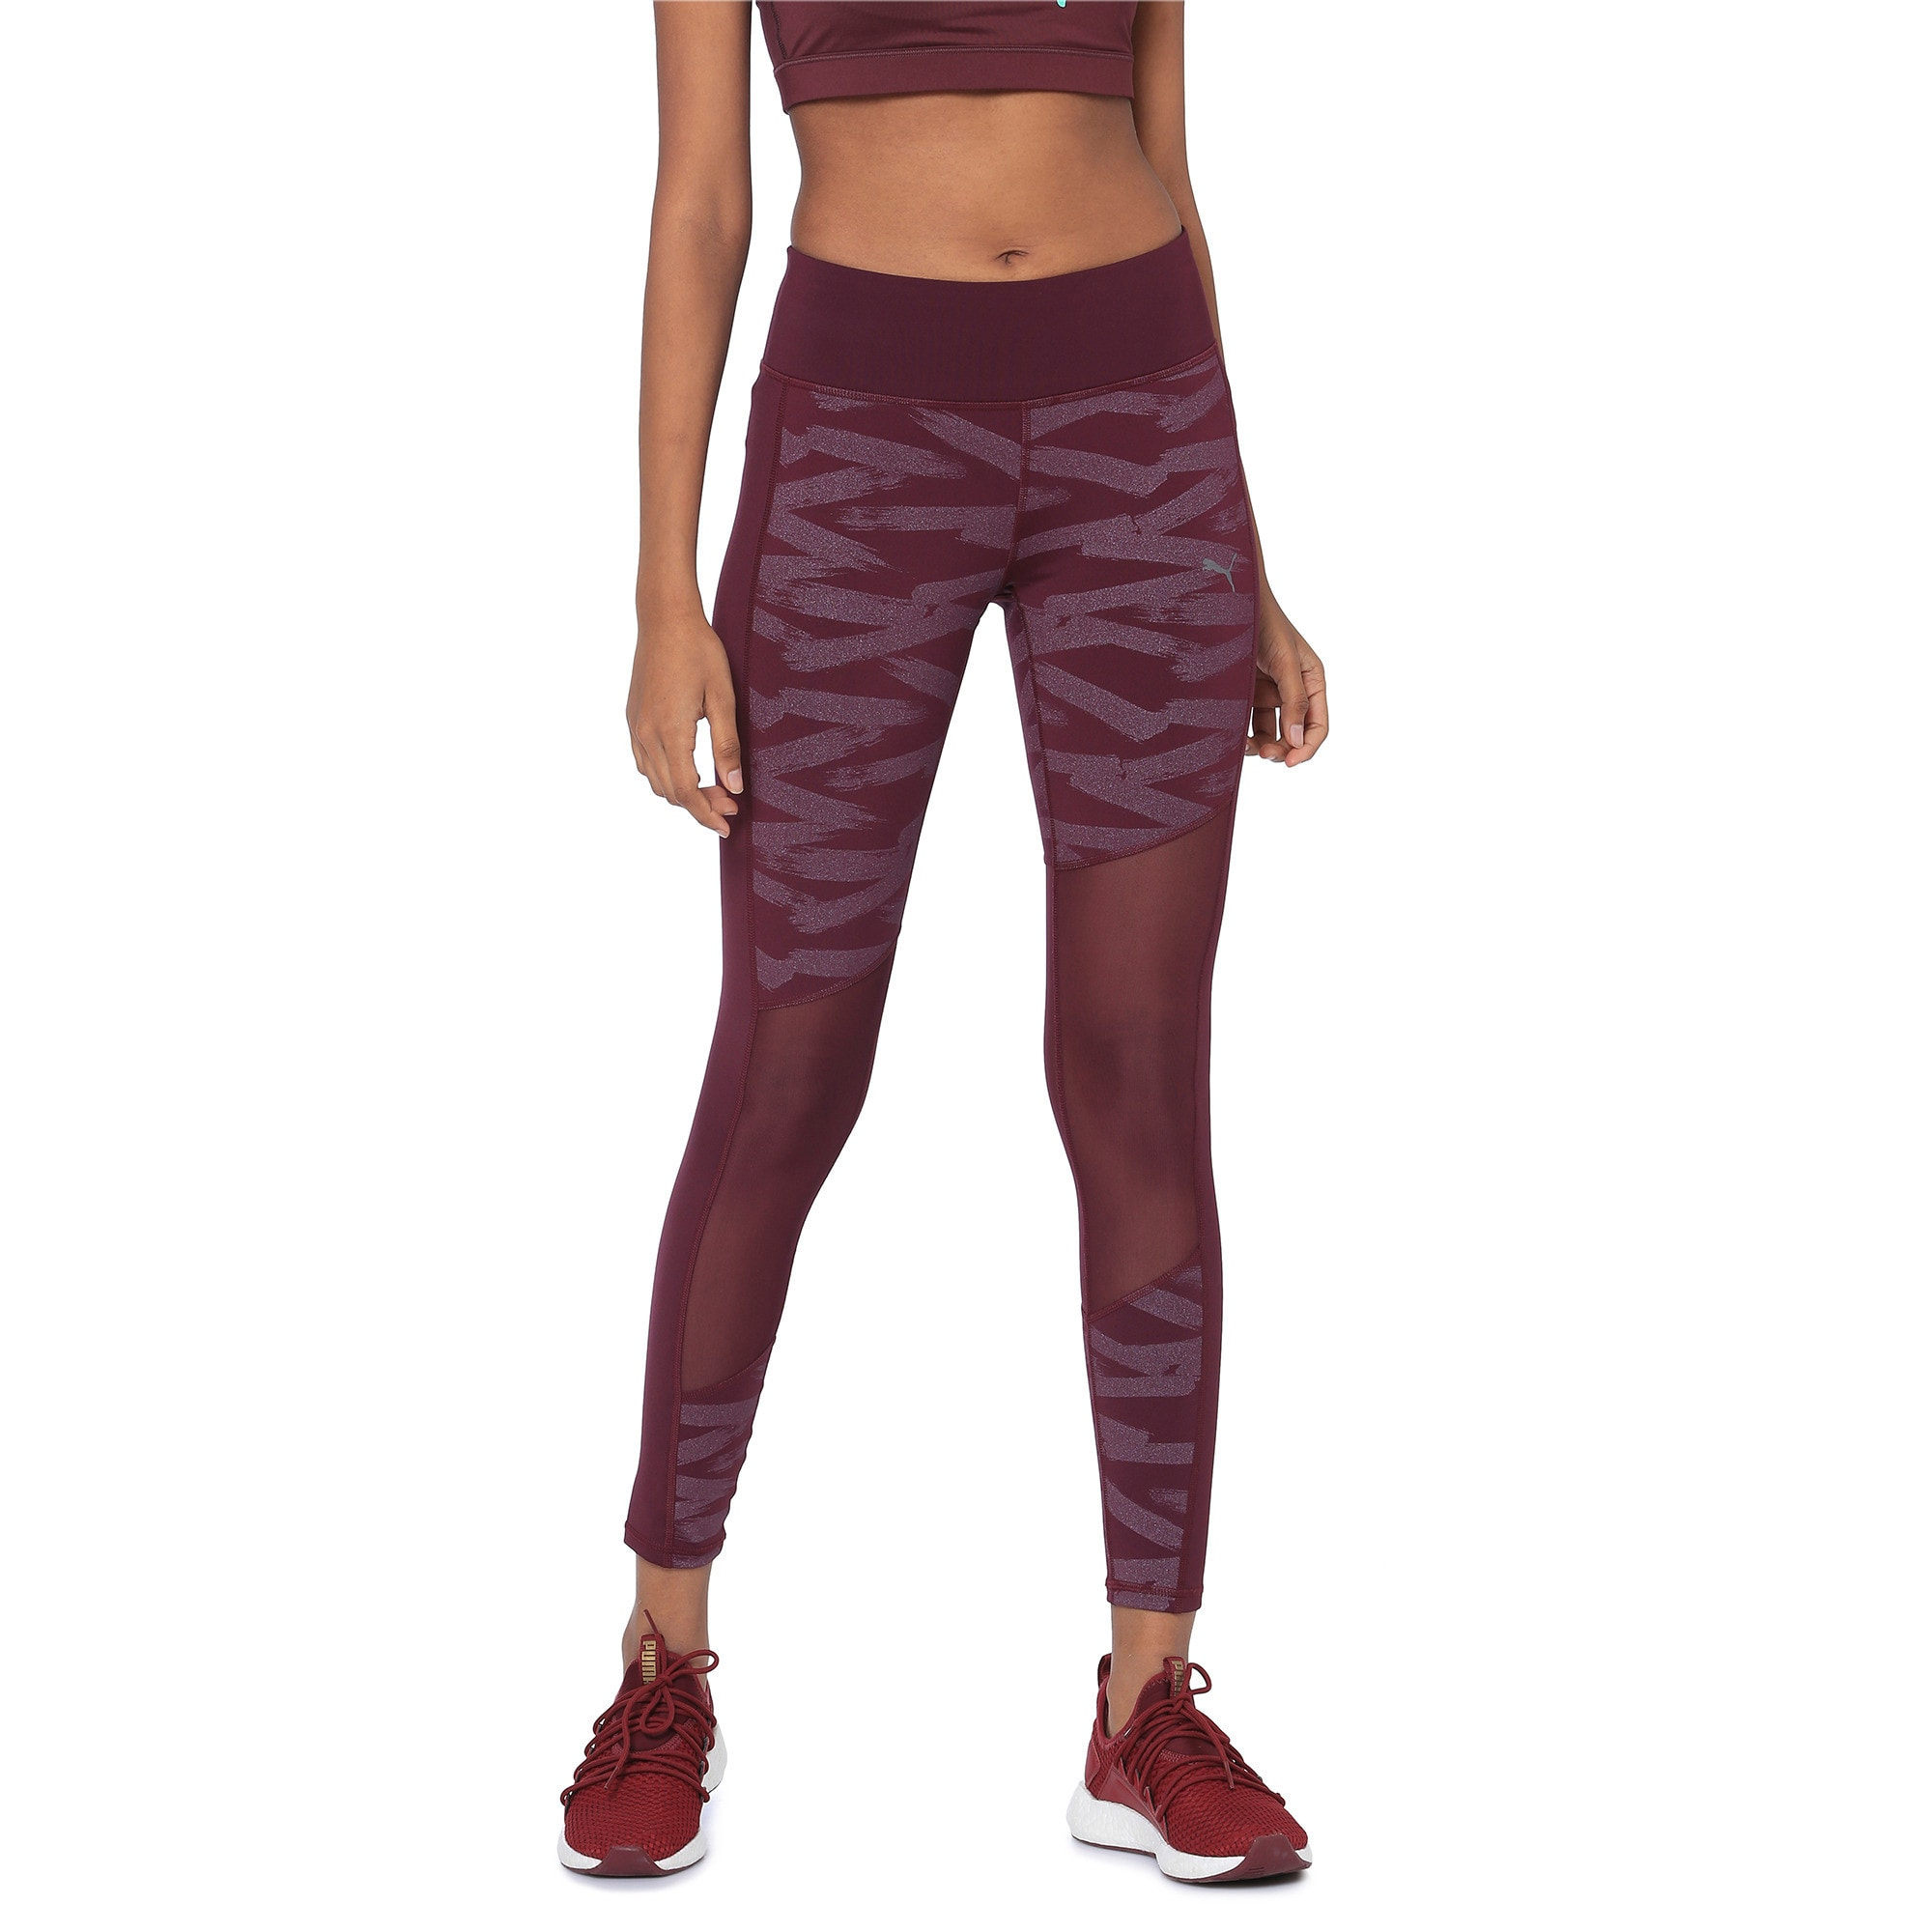 Thumbnail 2 of Always On Graphic 7/8 Women's Tights, Fig-Magenta Haze, medium-IND